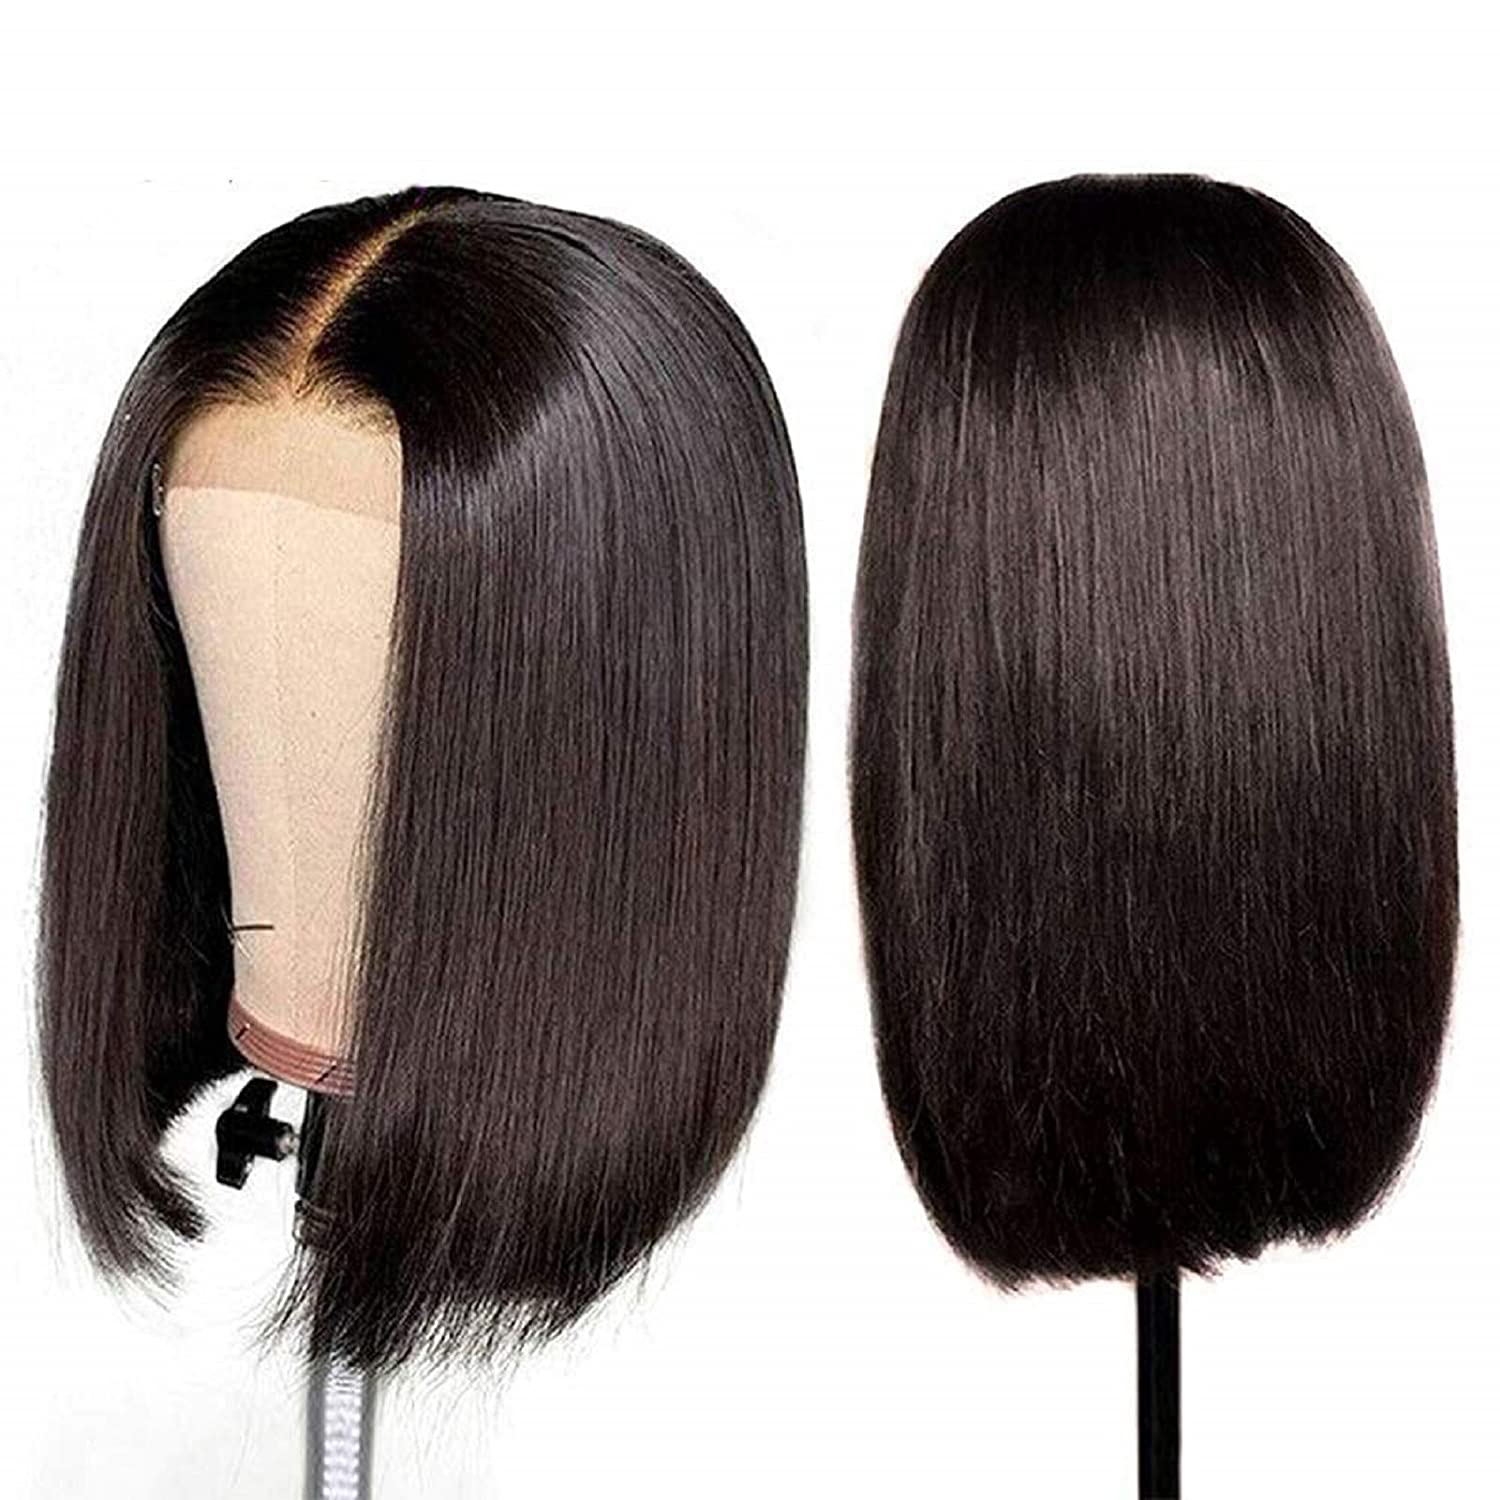 Ombre 4x4 Closure Wig Bone Straight  Wigs  T1b/99j   Cosplay Wig Lace Frontal Wigs 3